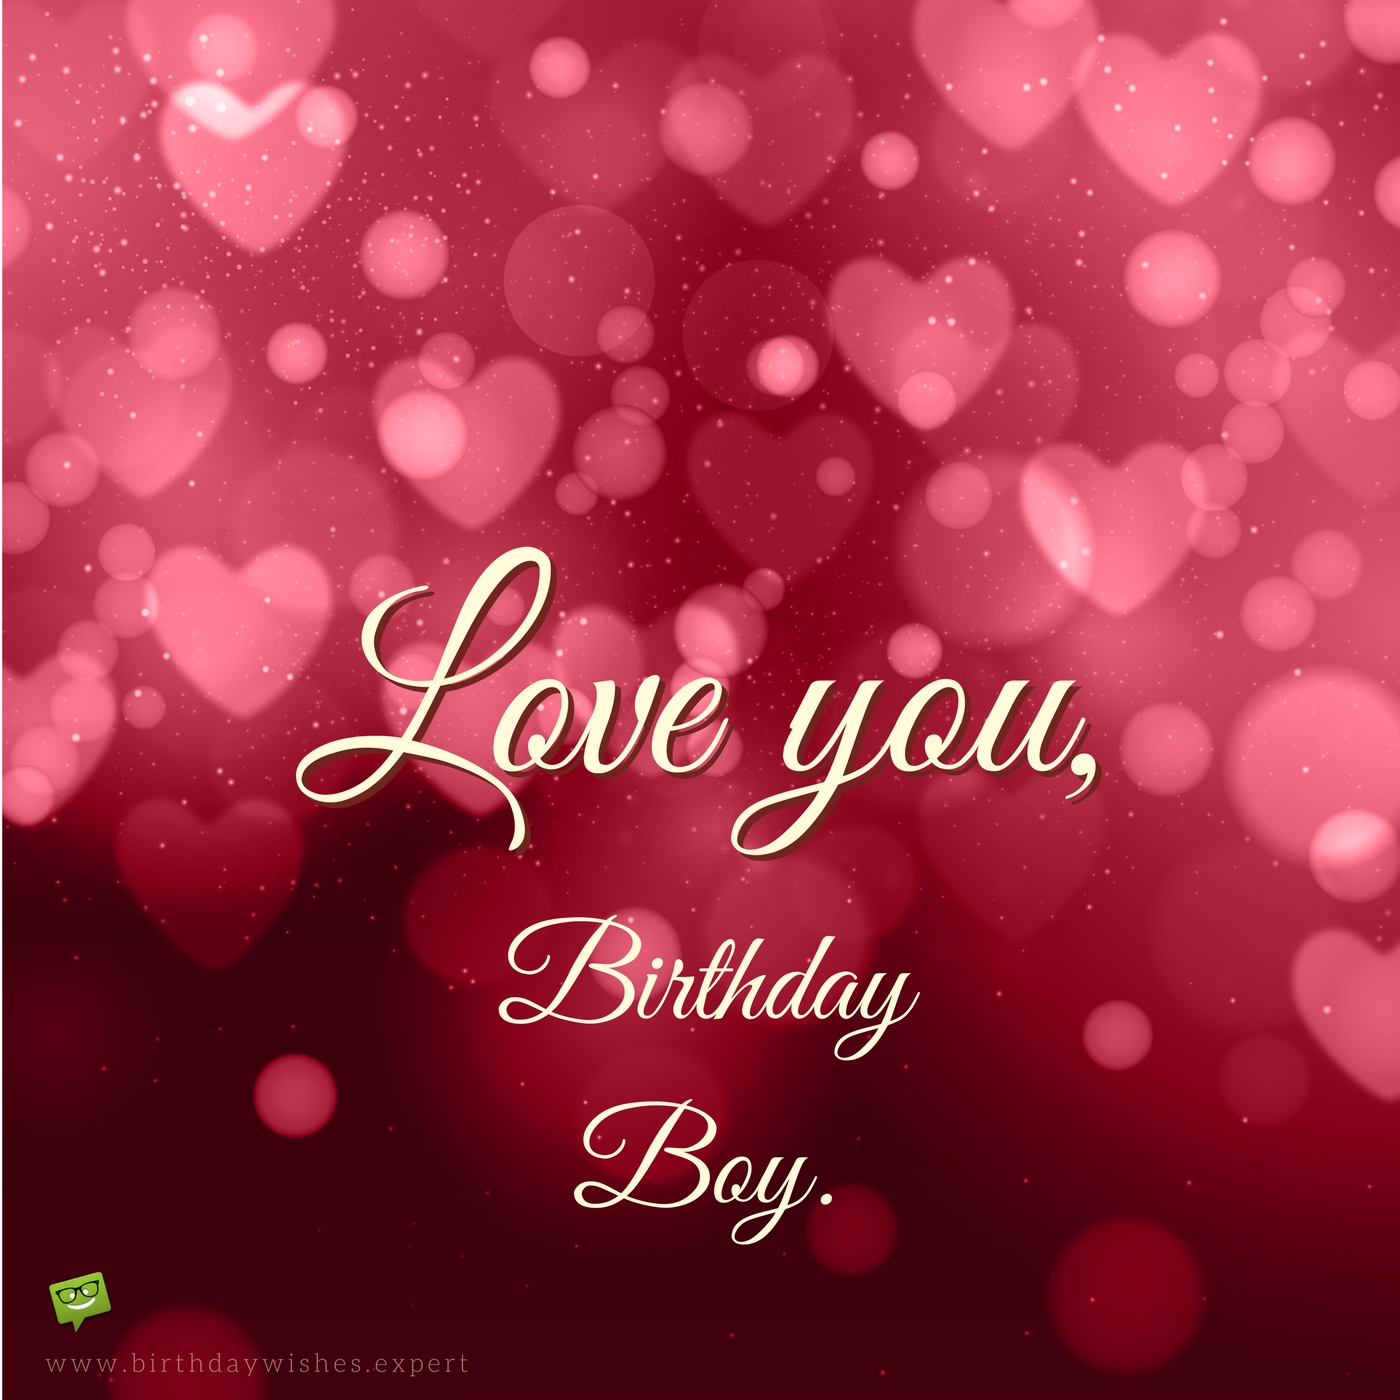 Lover Wallpaper Birthday : Birthday Wishes for Boyfriend Pictures, Images, Graphics for Facebook, Whatsapp